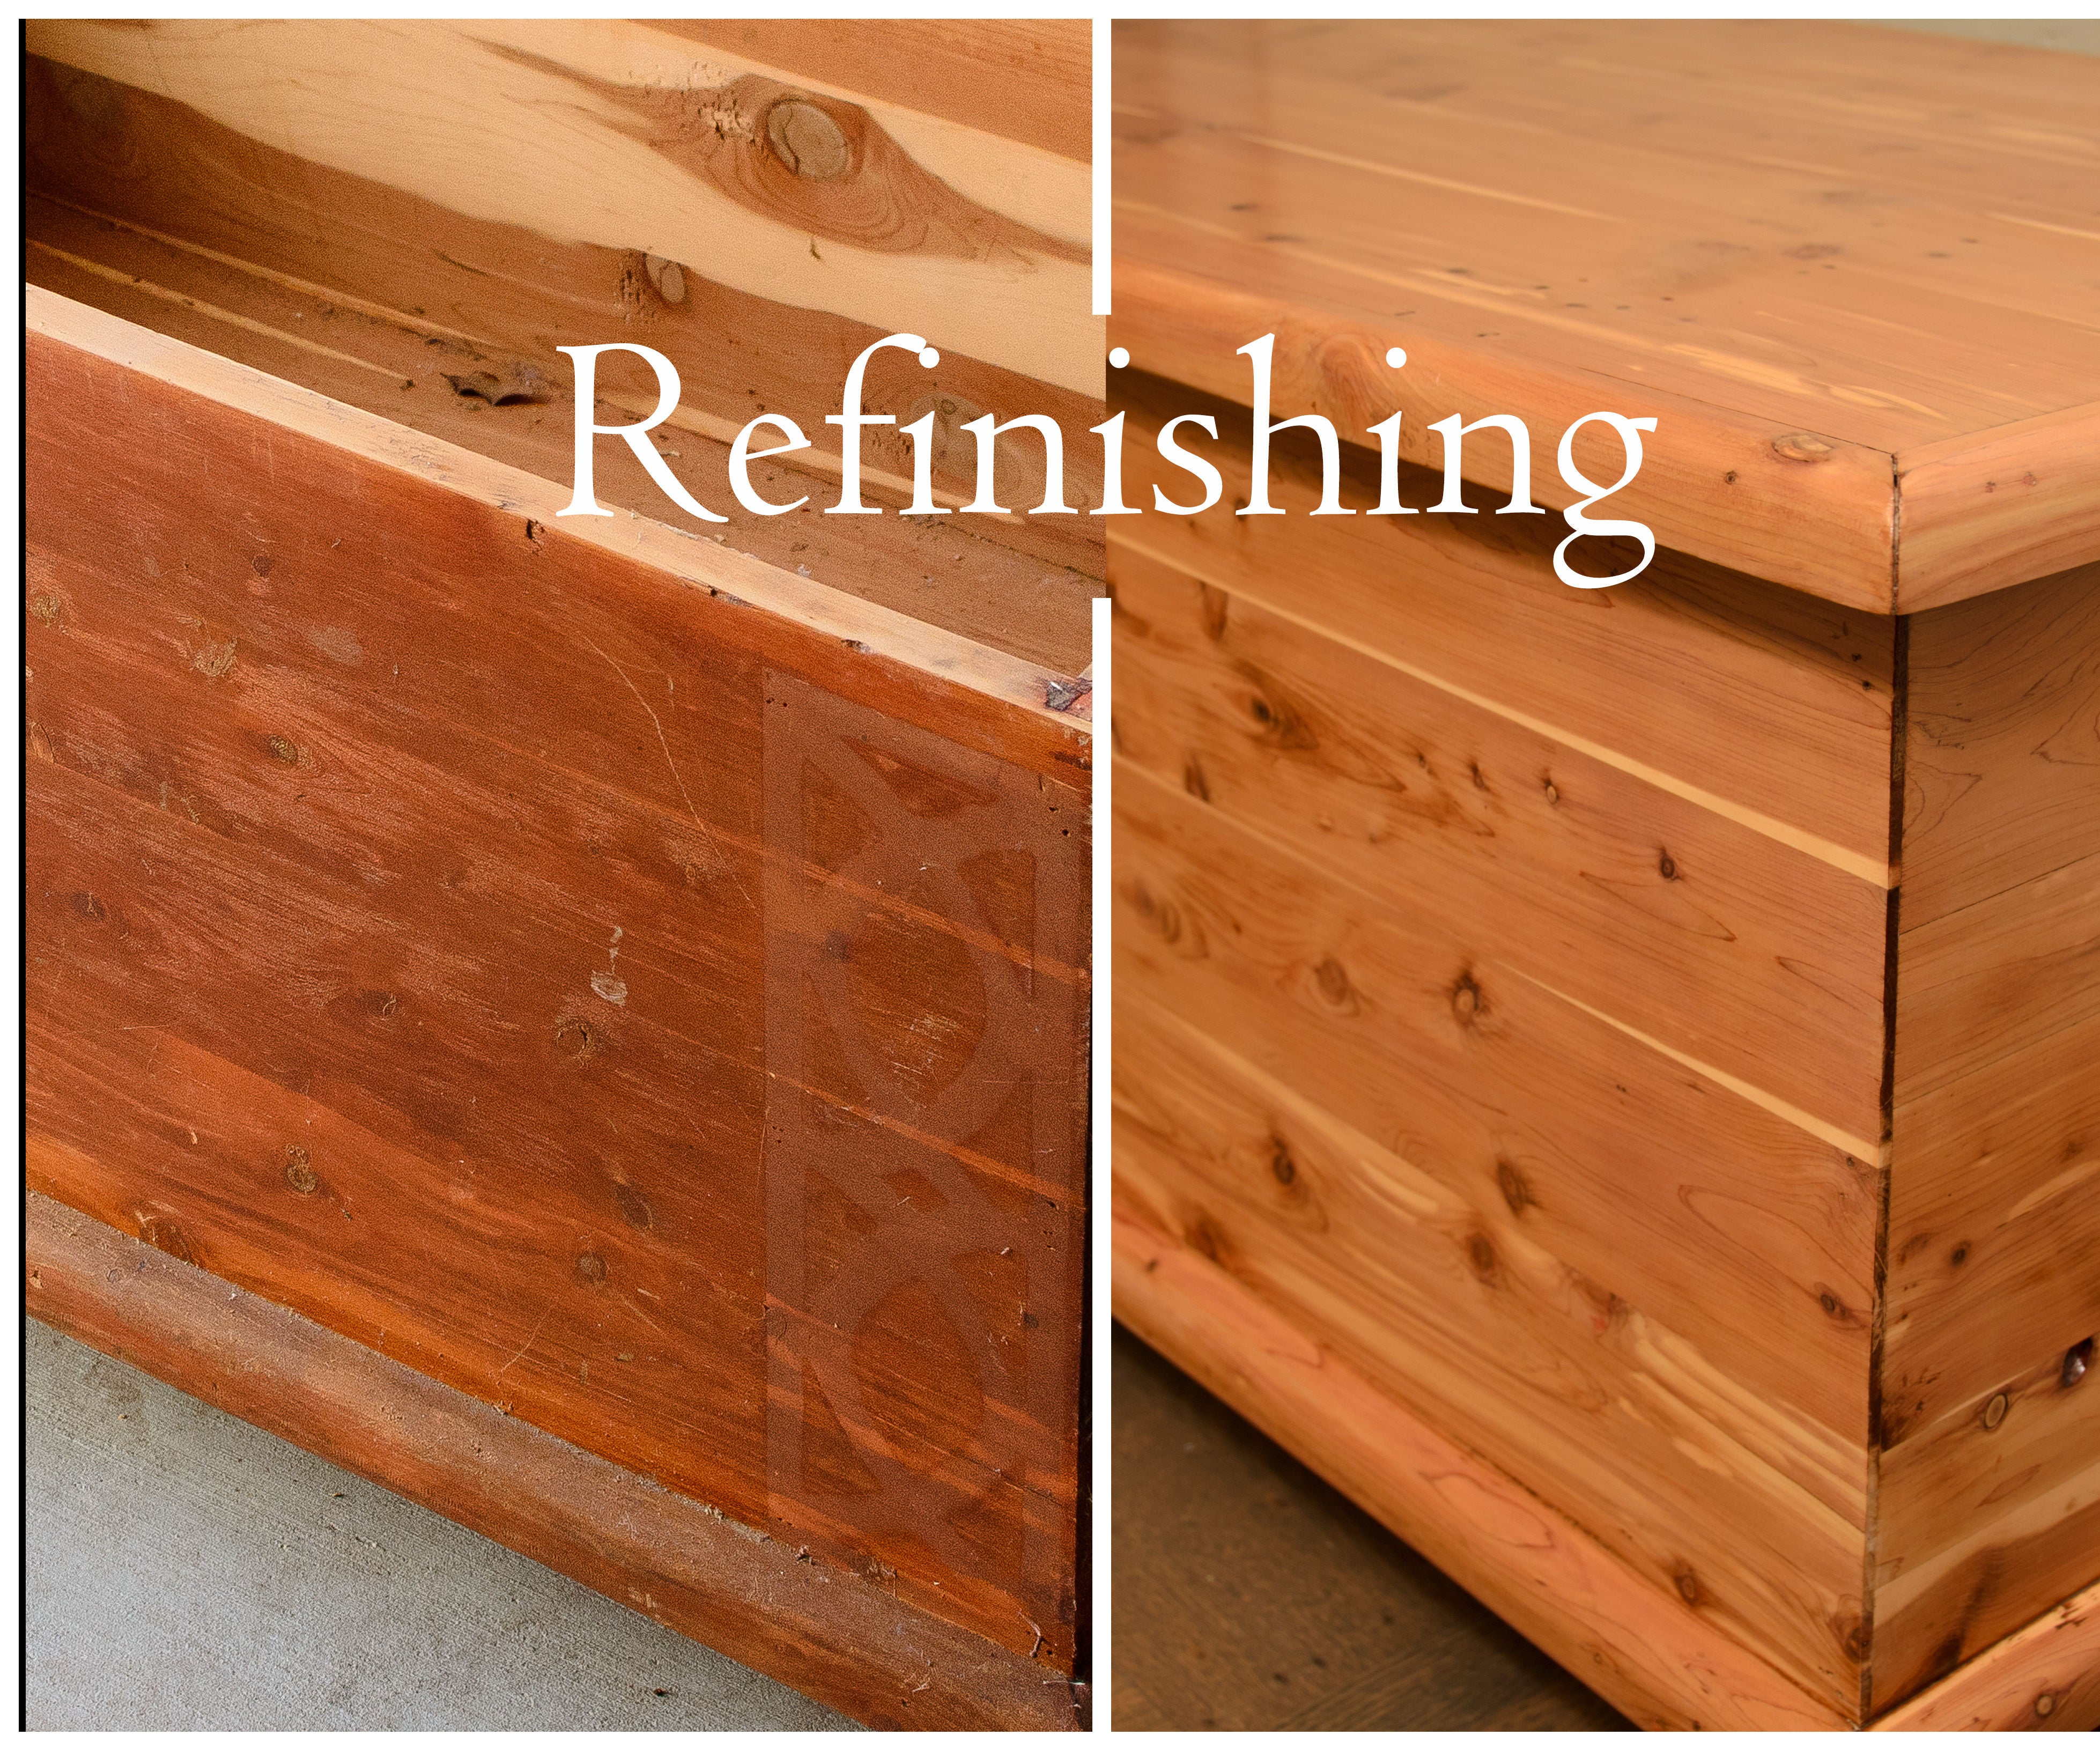 Refinishing Old Furniture : 14 Steps (with Pictures) - Instructables